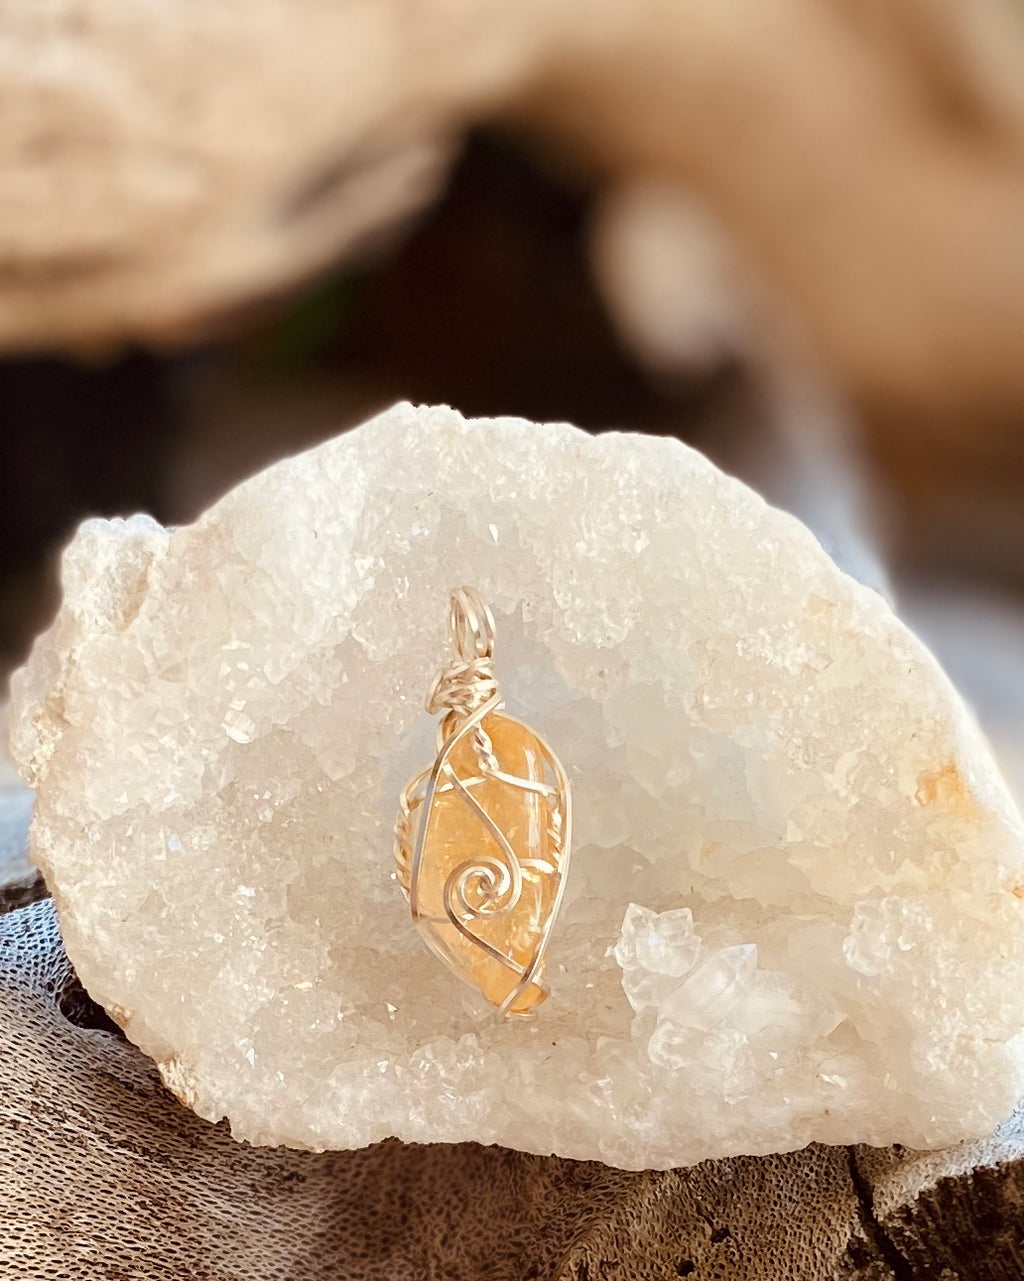 Artisan crafted natural Citrine pendant necklace handmade in Byron Bay. Wrapped in fine silver-plated copper wire.